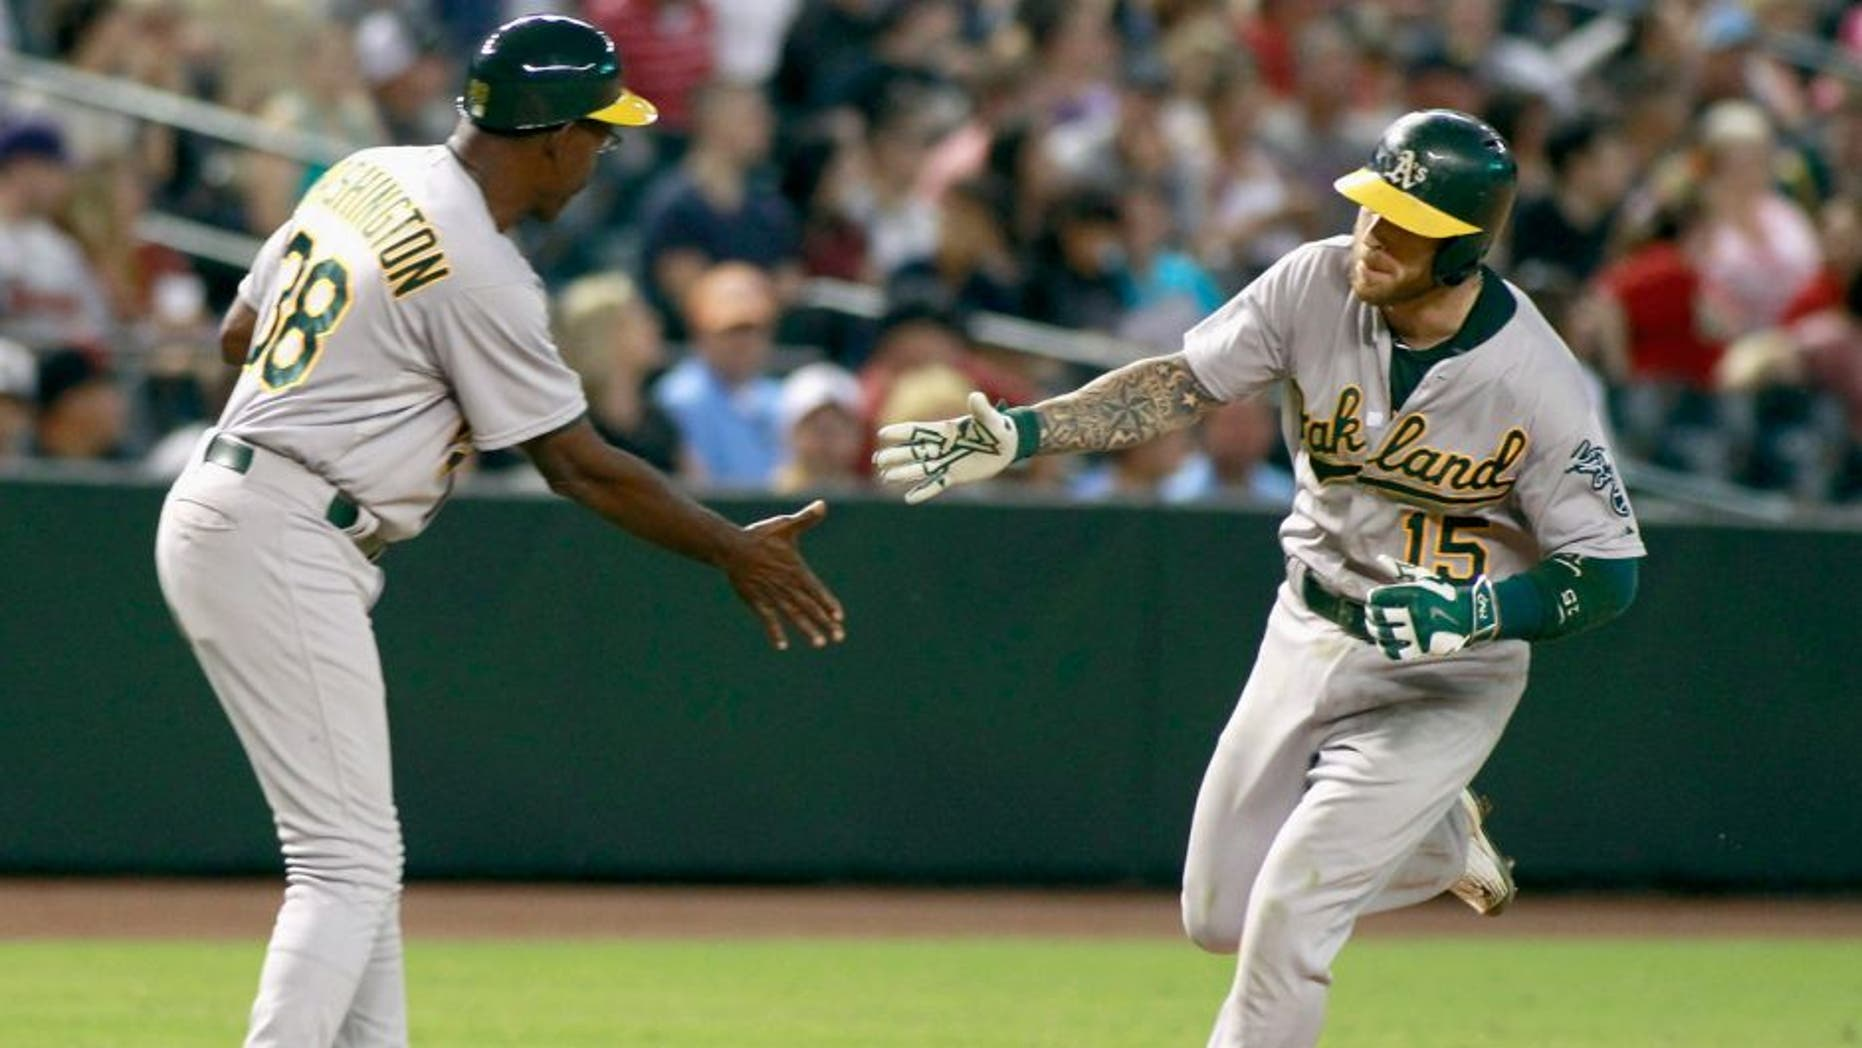 PHOENIX, AZ - AUGUST 28: Brett Lawrie #15 of the Oakland Athletics is congratulated by third base coach Ron Washington #38 after hitting a two-run home run against the Arizona Diamondbacks during the ninth inning of a MLB game at Chase Field on August 28, 2015 in Phoenix, Arizona. (Photo by Ralph Freso/Getty Images)